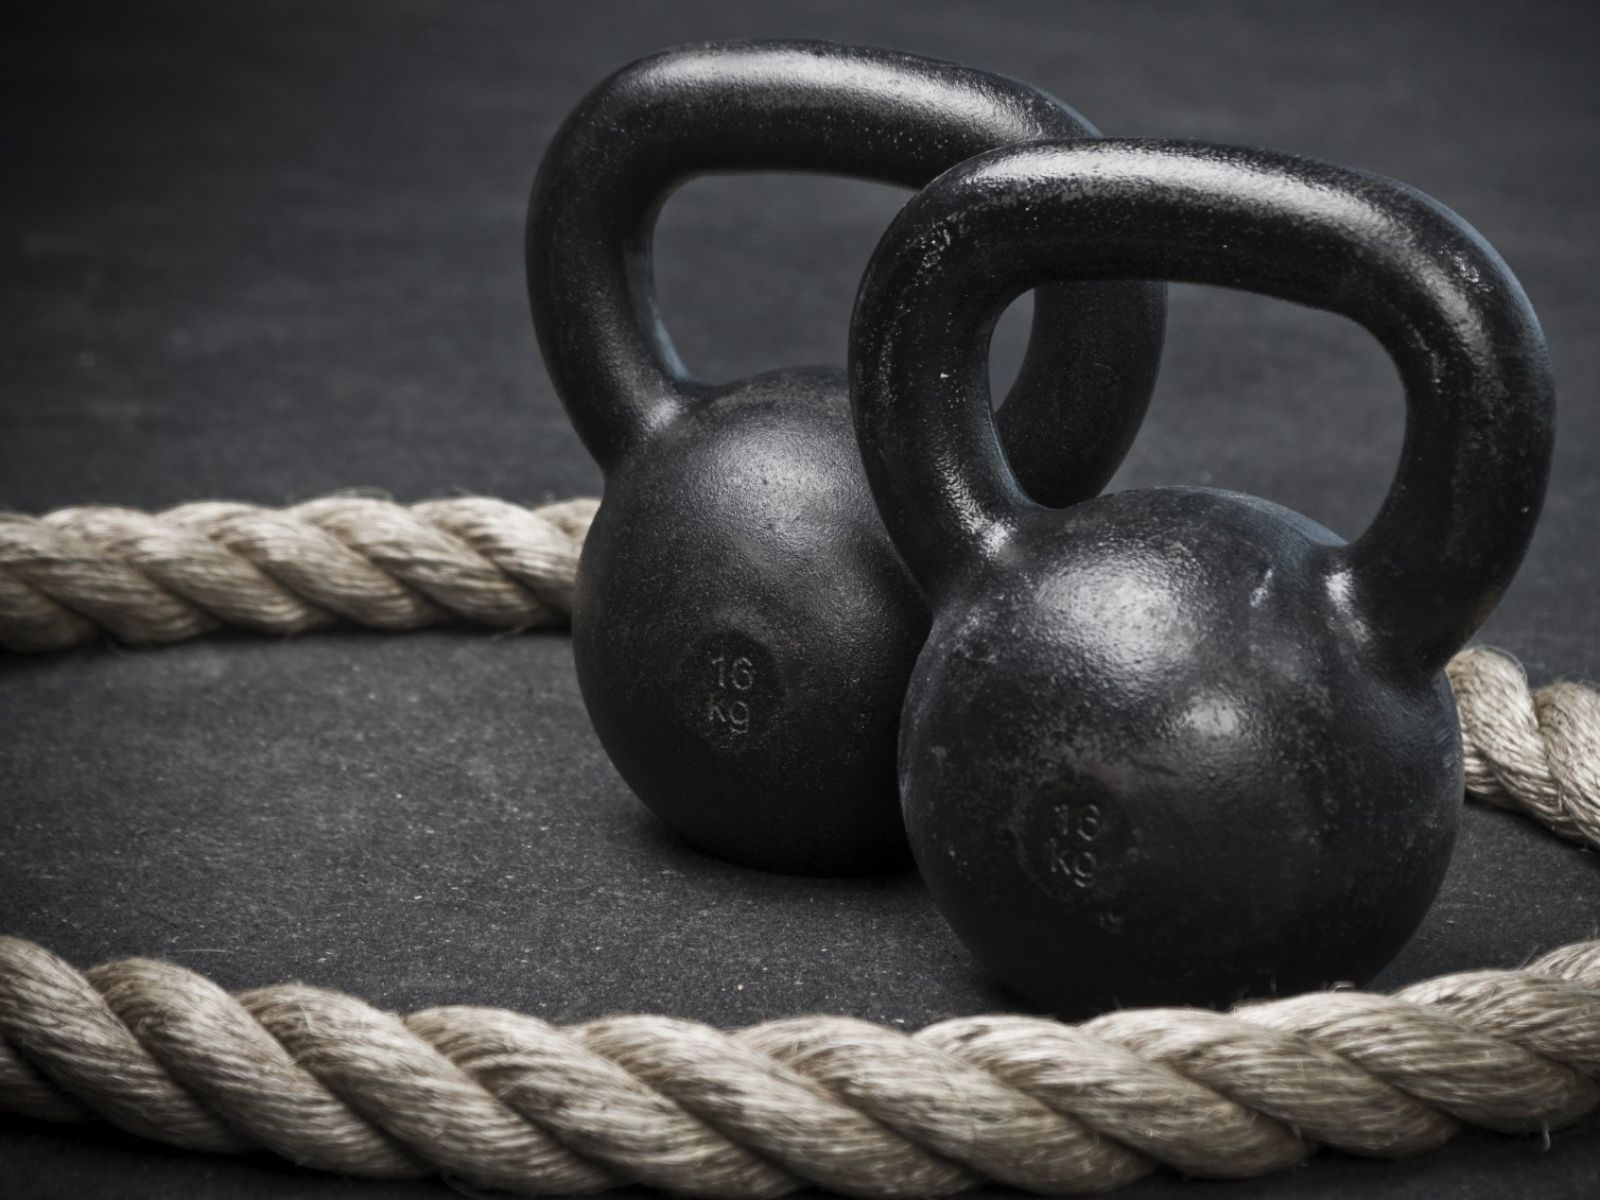 https://urbancombatives.com/wp-content/uploads/2019/01/kettlebells.jpg